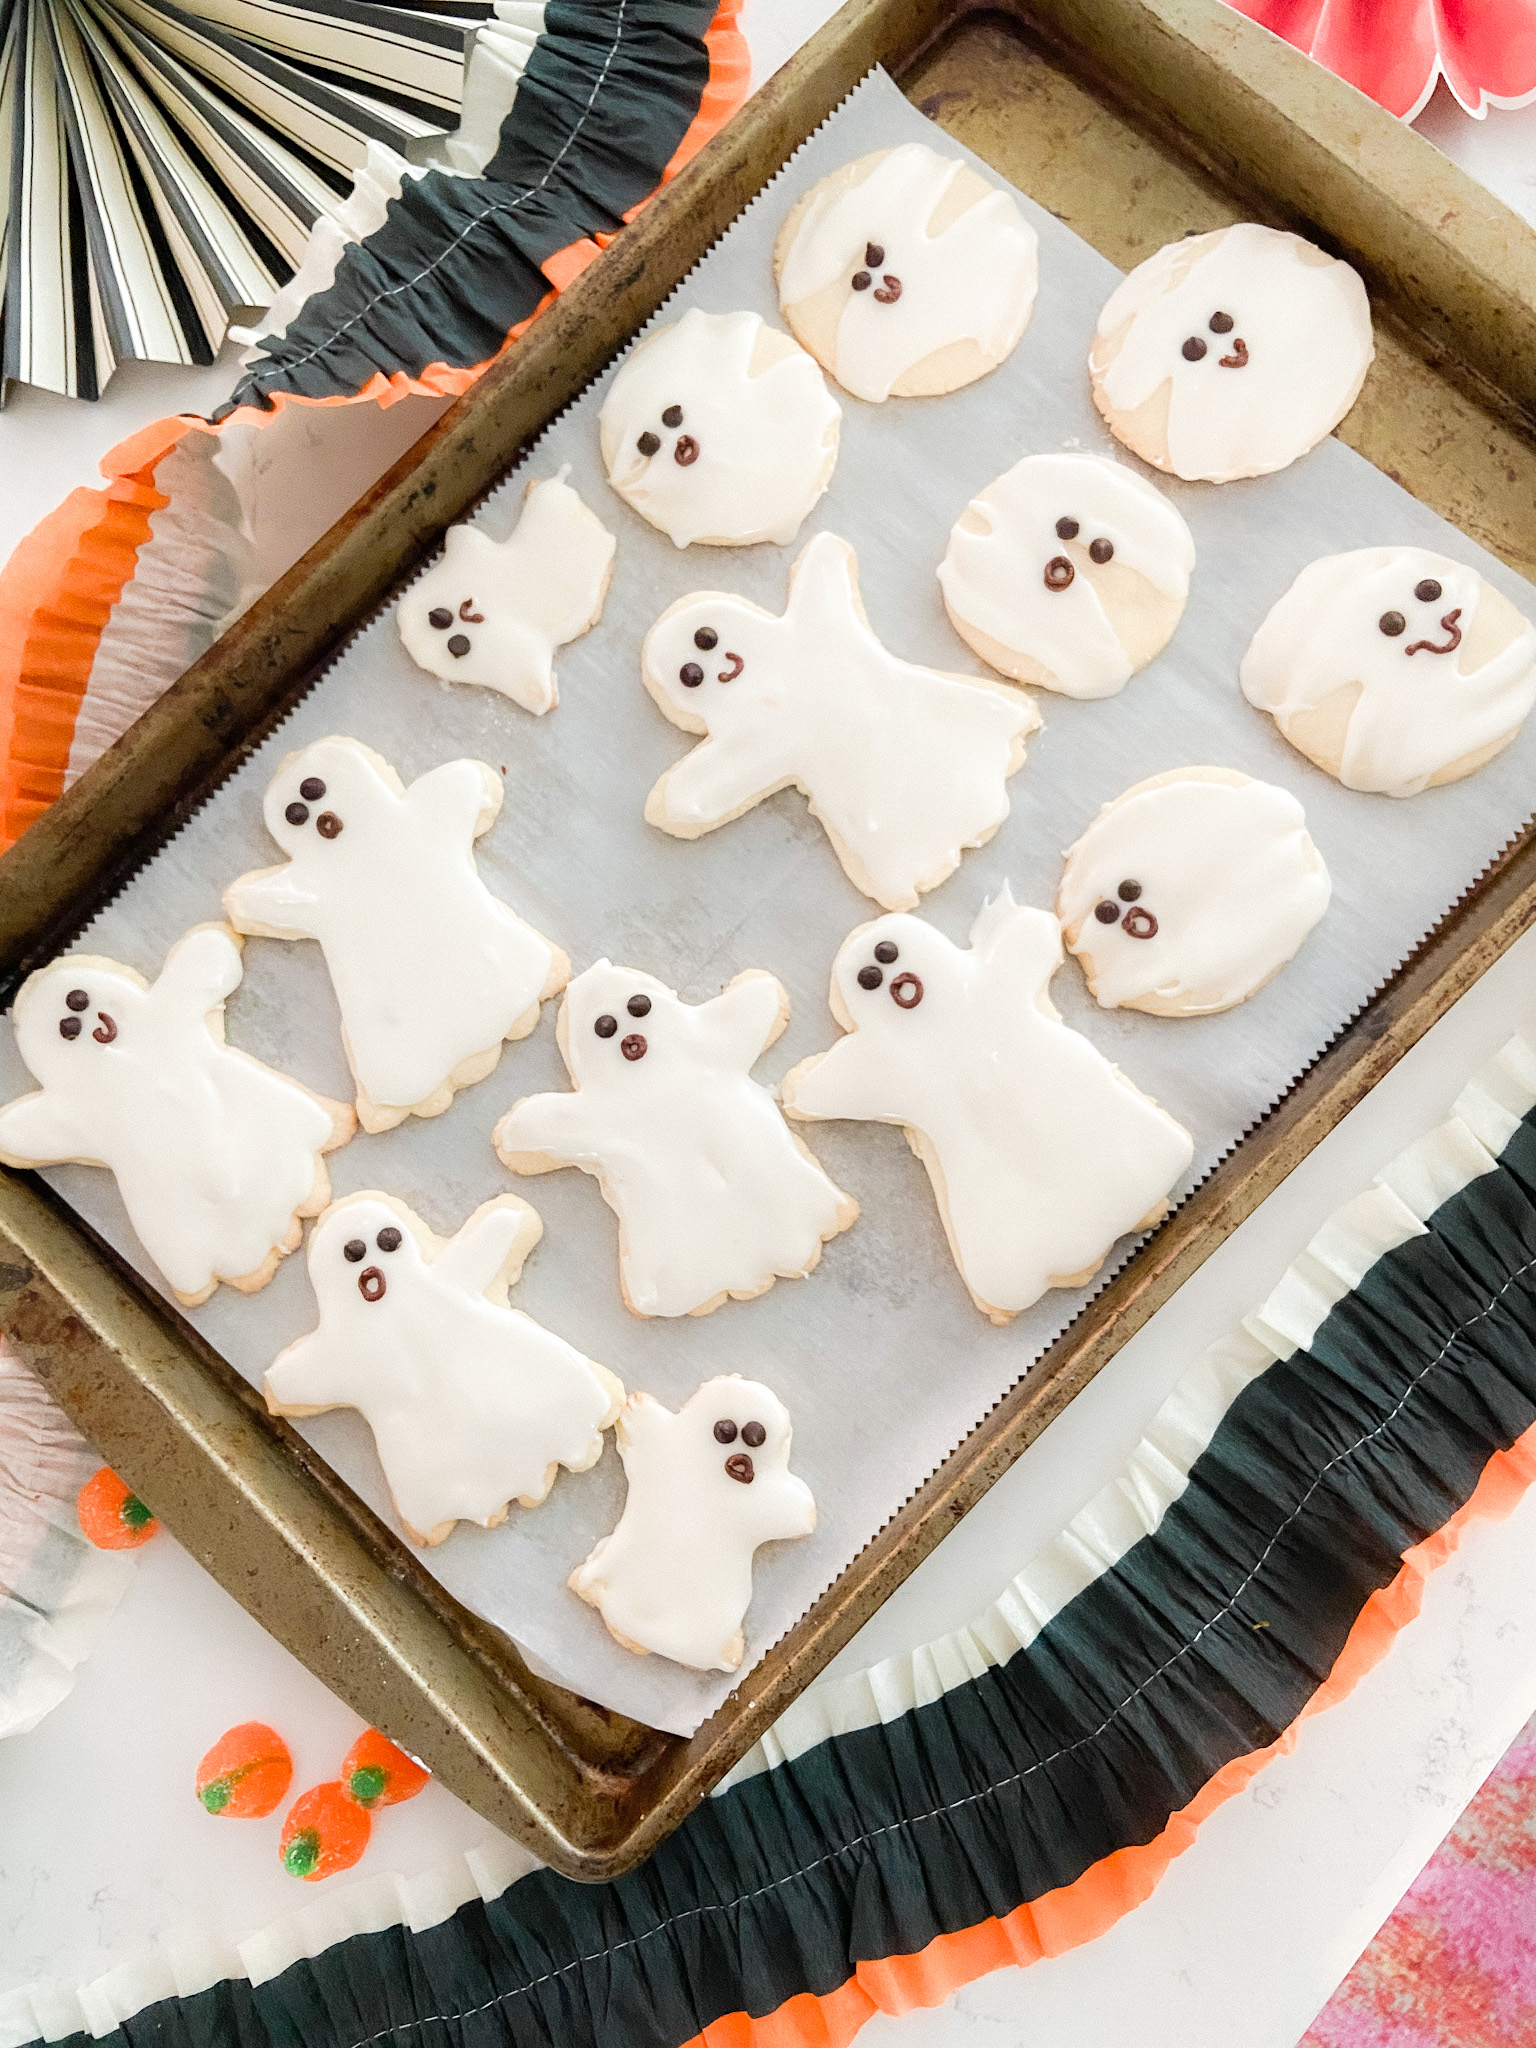 Ghost No Chill Sugar Cookies with 3 Minute Frosting. Celebrate Halloween by making shaped cookies with your kids. This recipe is quick to make with no chill time and frosting that whips up in minutes.